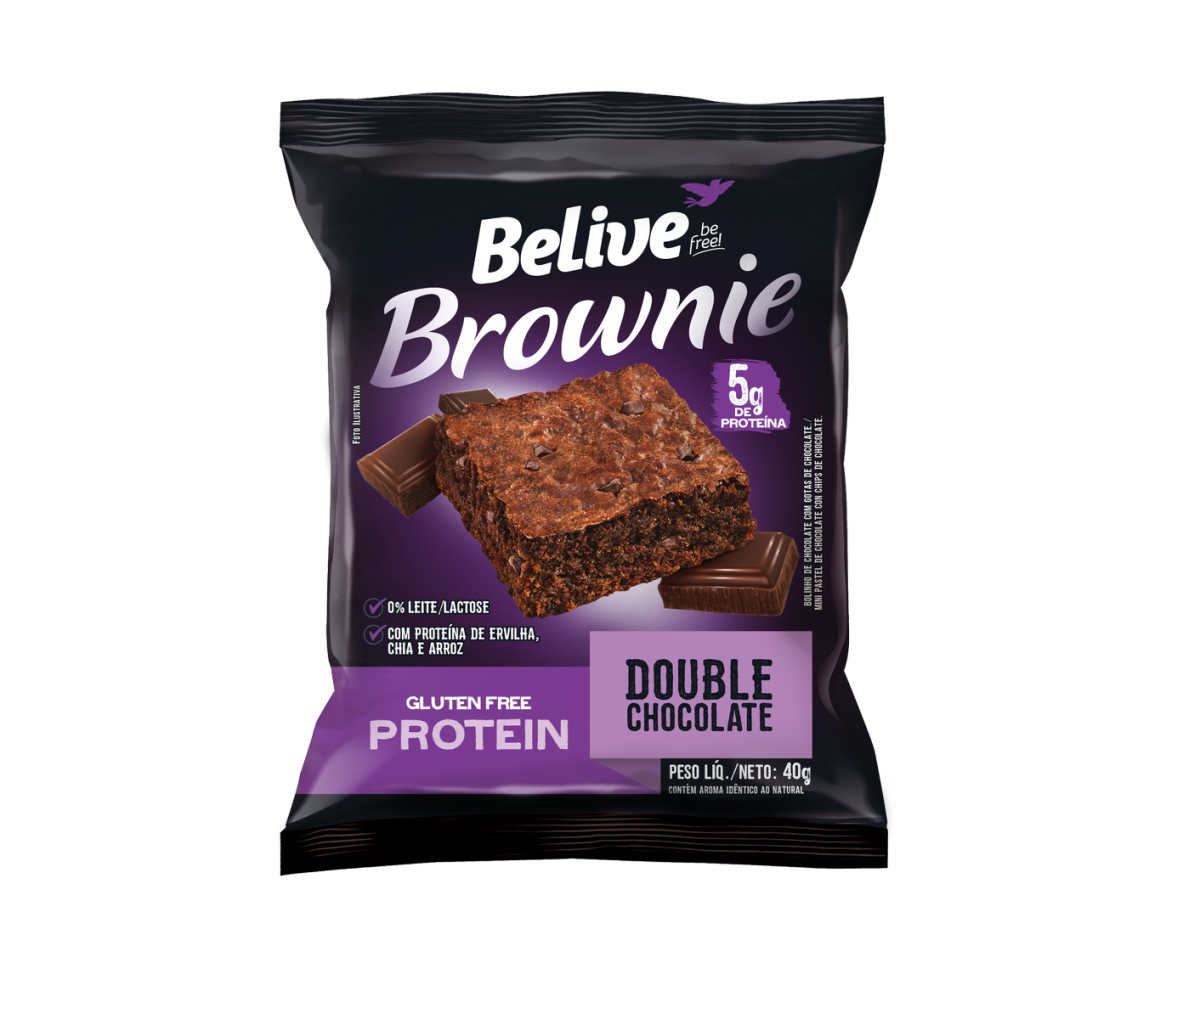 Brownie Double Chocolate Protein 40g - Belive